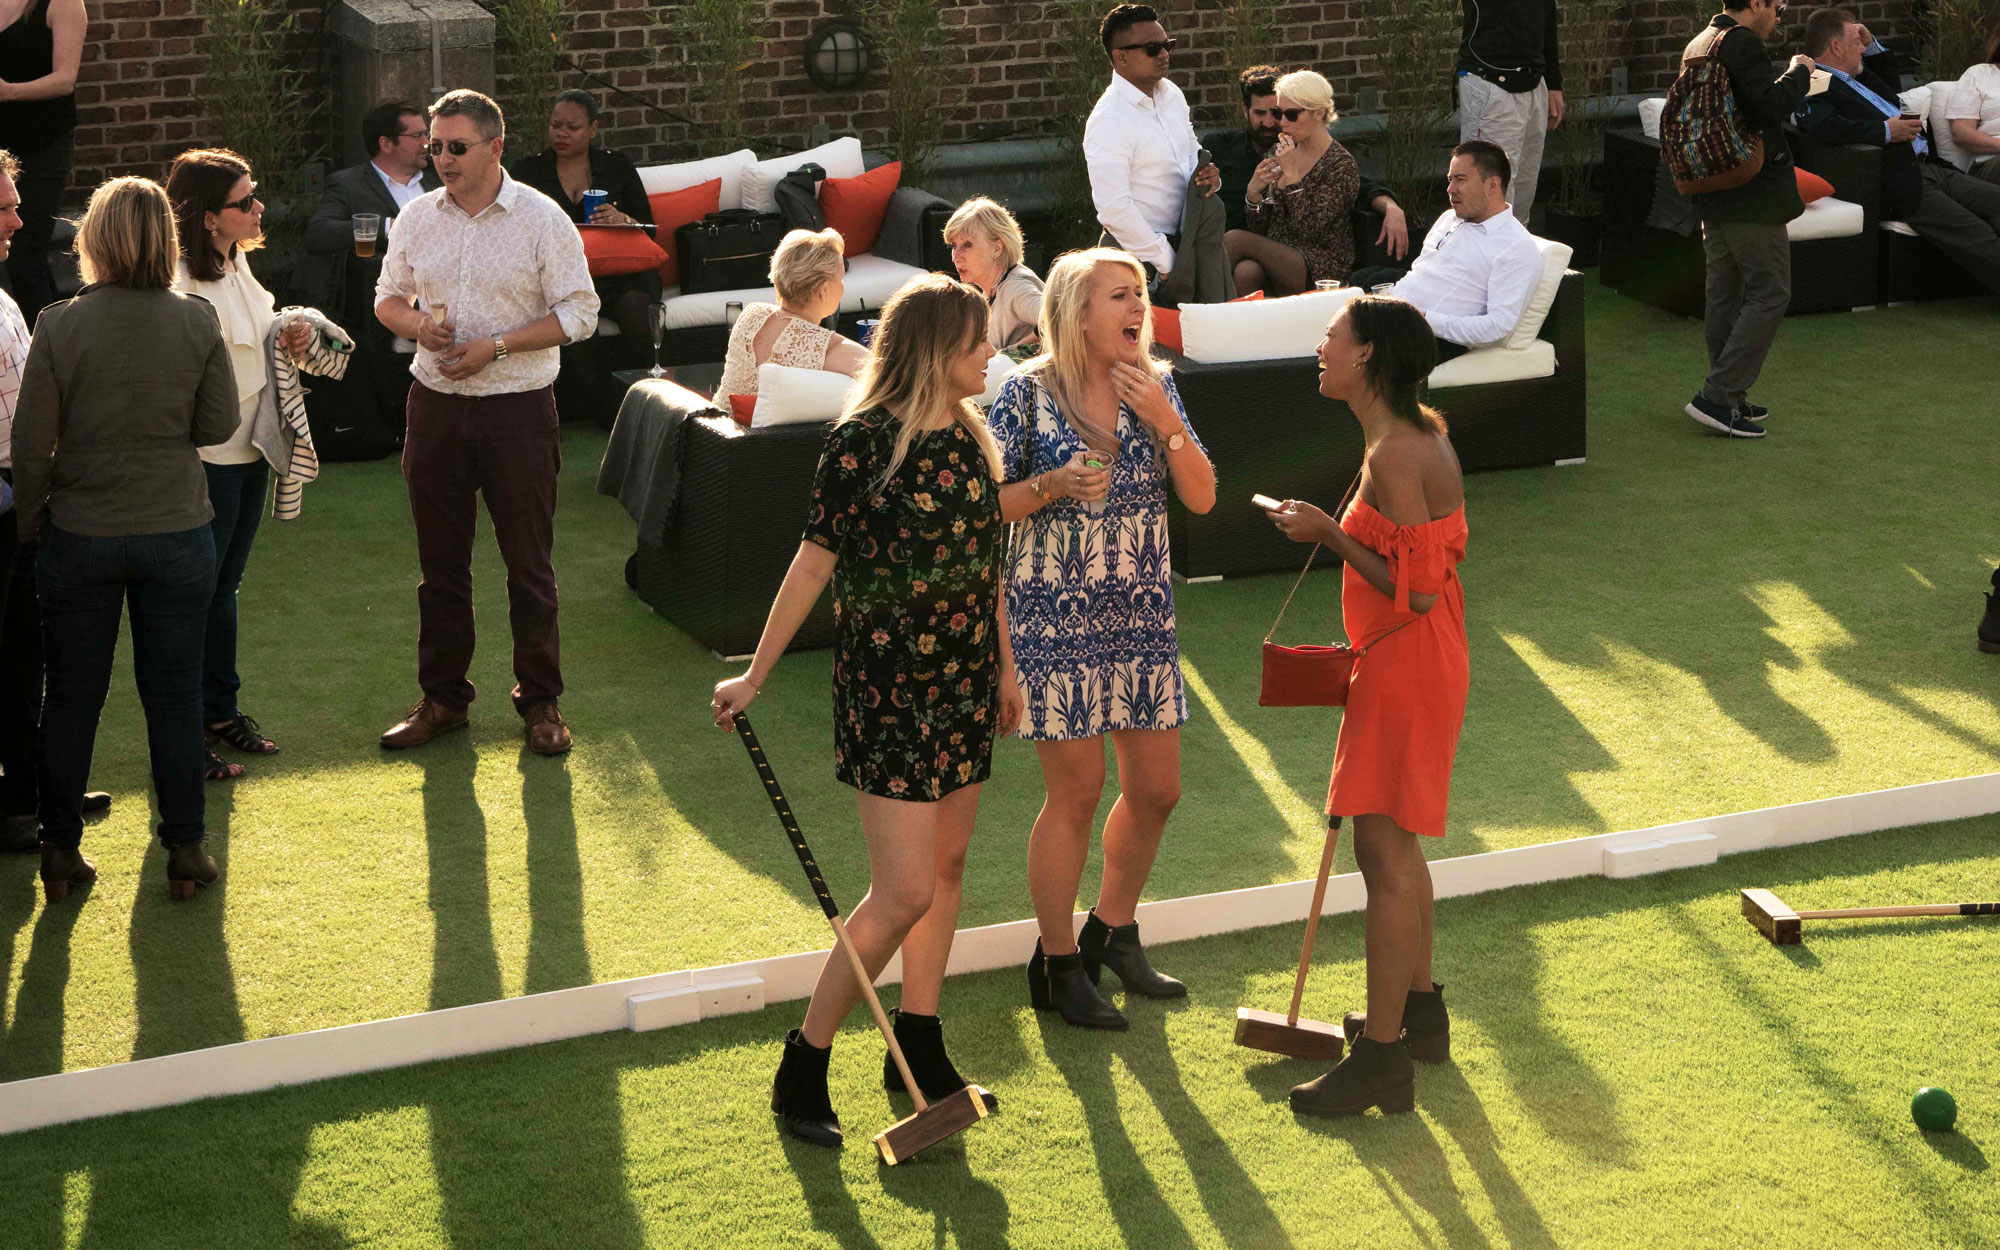 Skylight London Tobacco Dock rooftop terrace bar event space private party screening outdoor summer winter